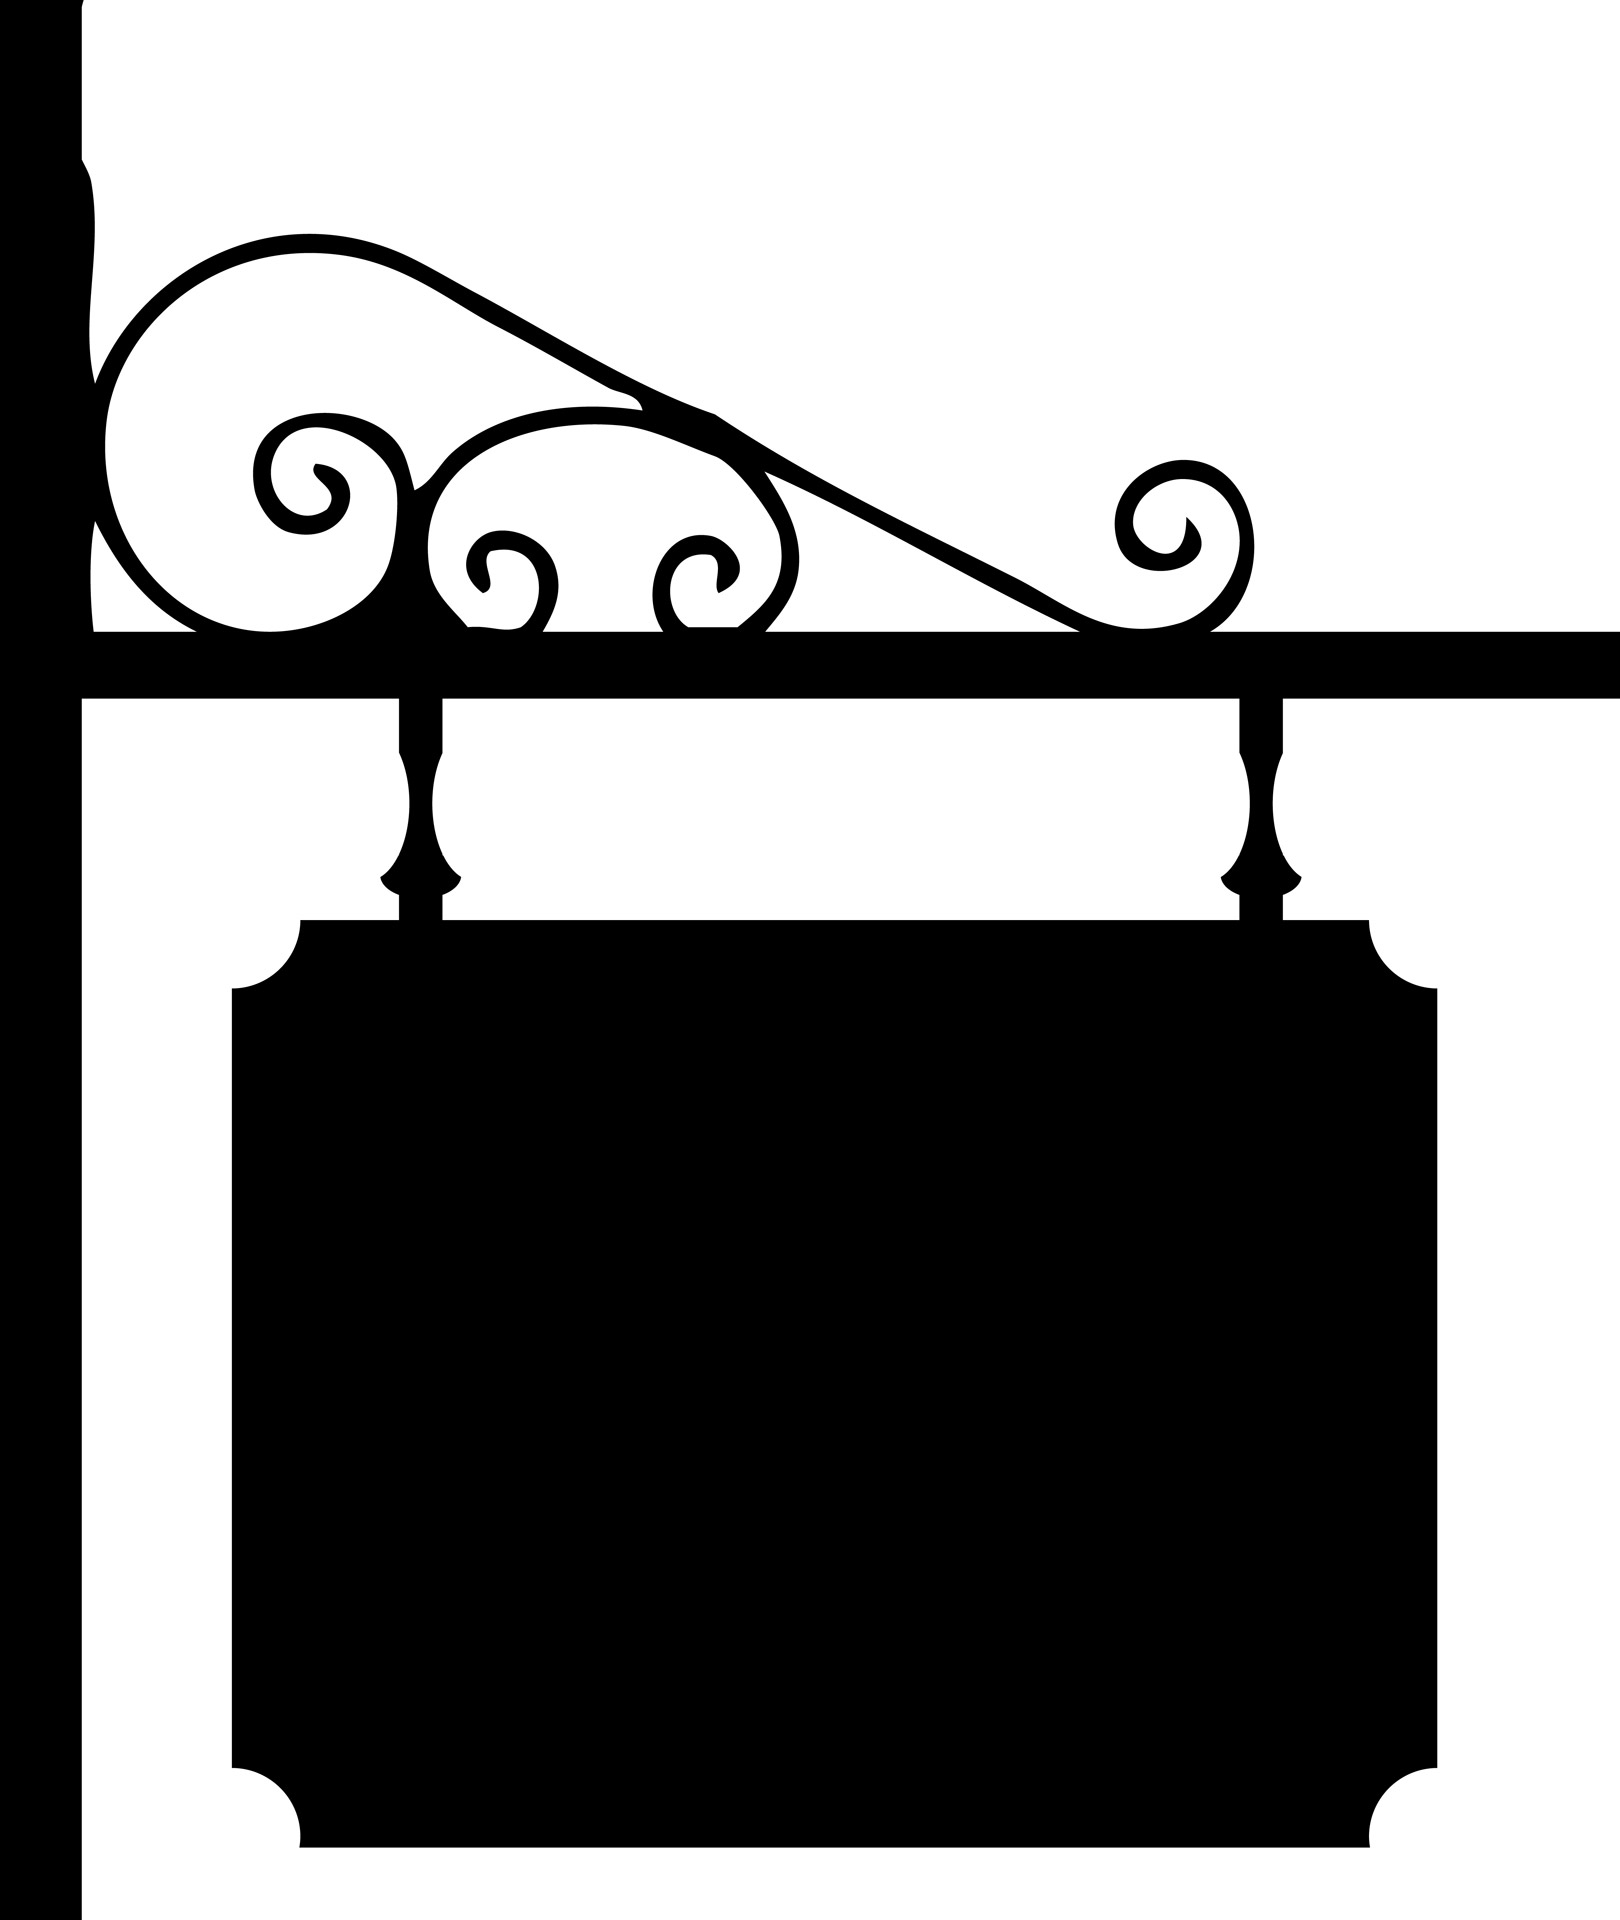 Decorative clipart wrought iron. Sign free stock photo